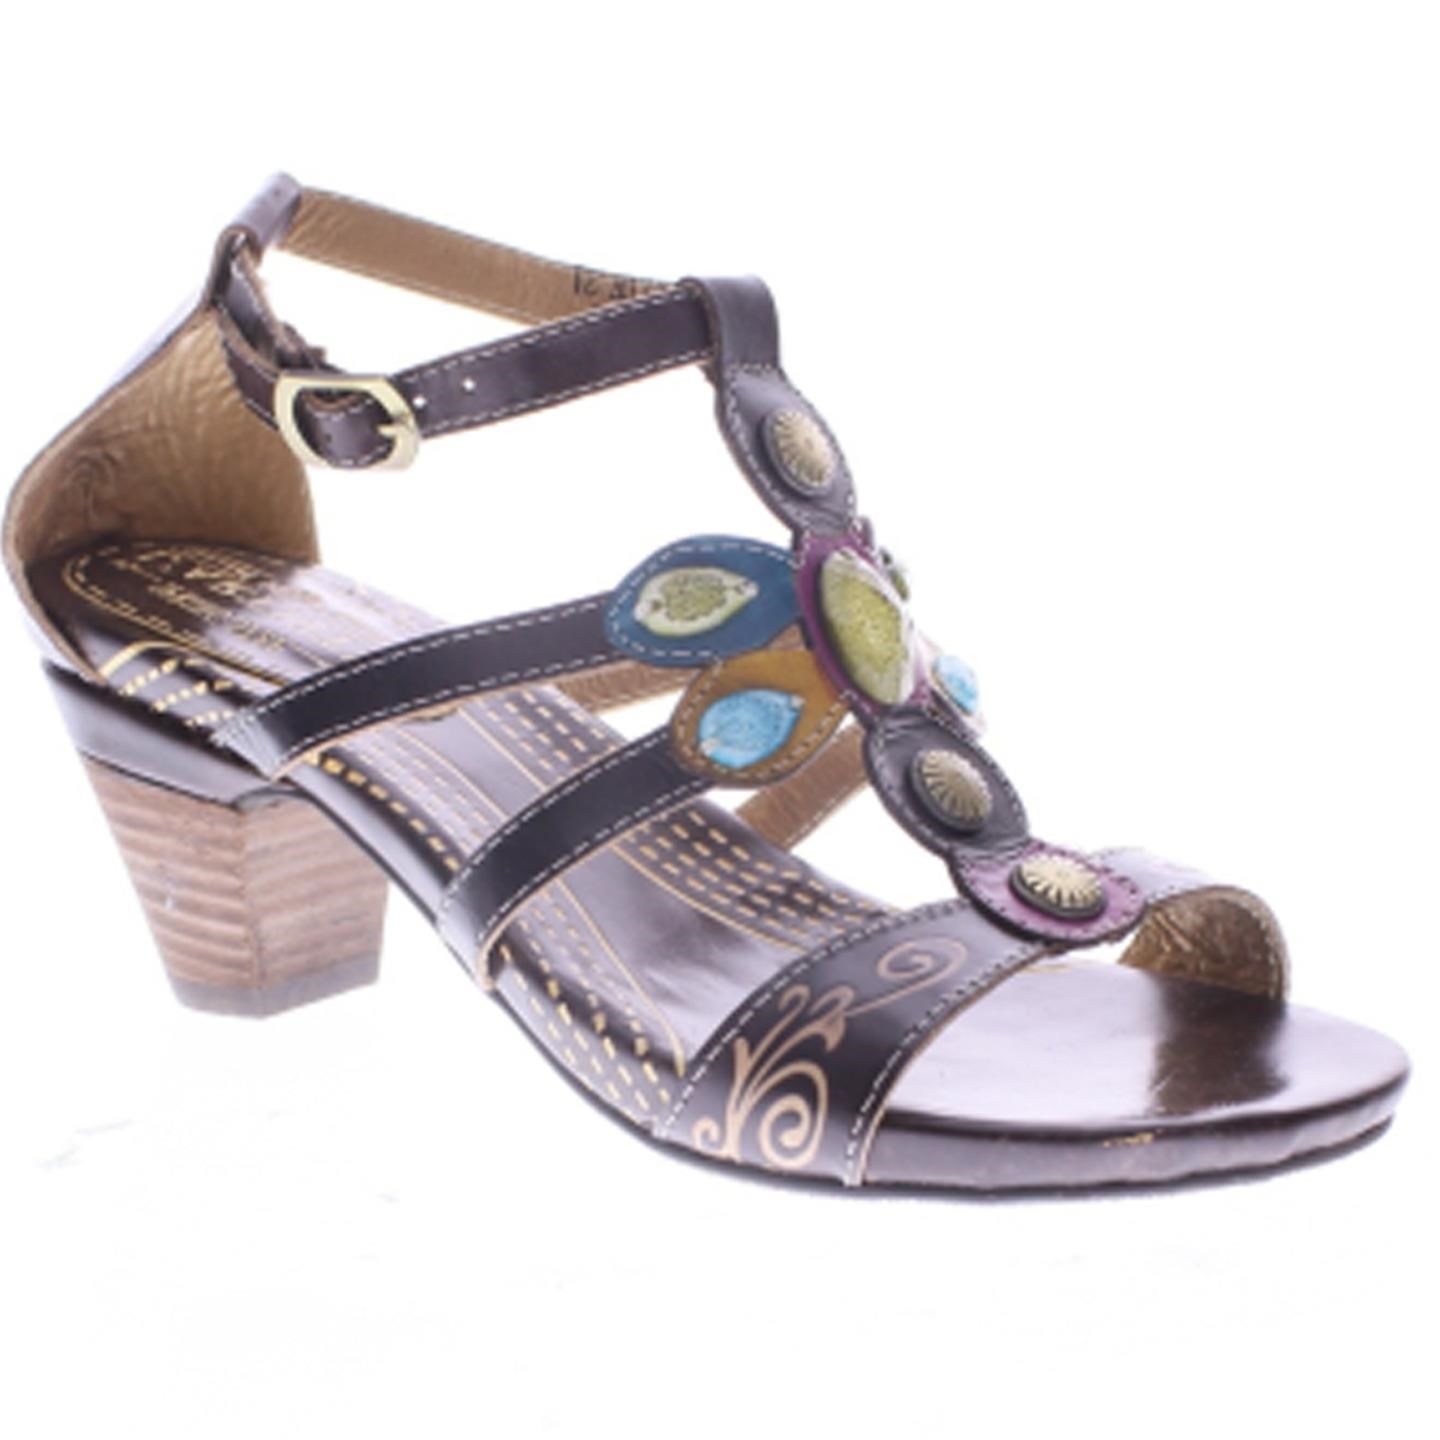 L'Artiste Frenzie By Spring Step Brown Leather Sandal 38 EU   8 US Women by Spring Step